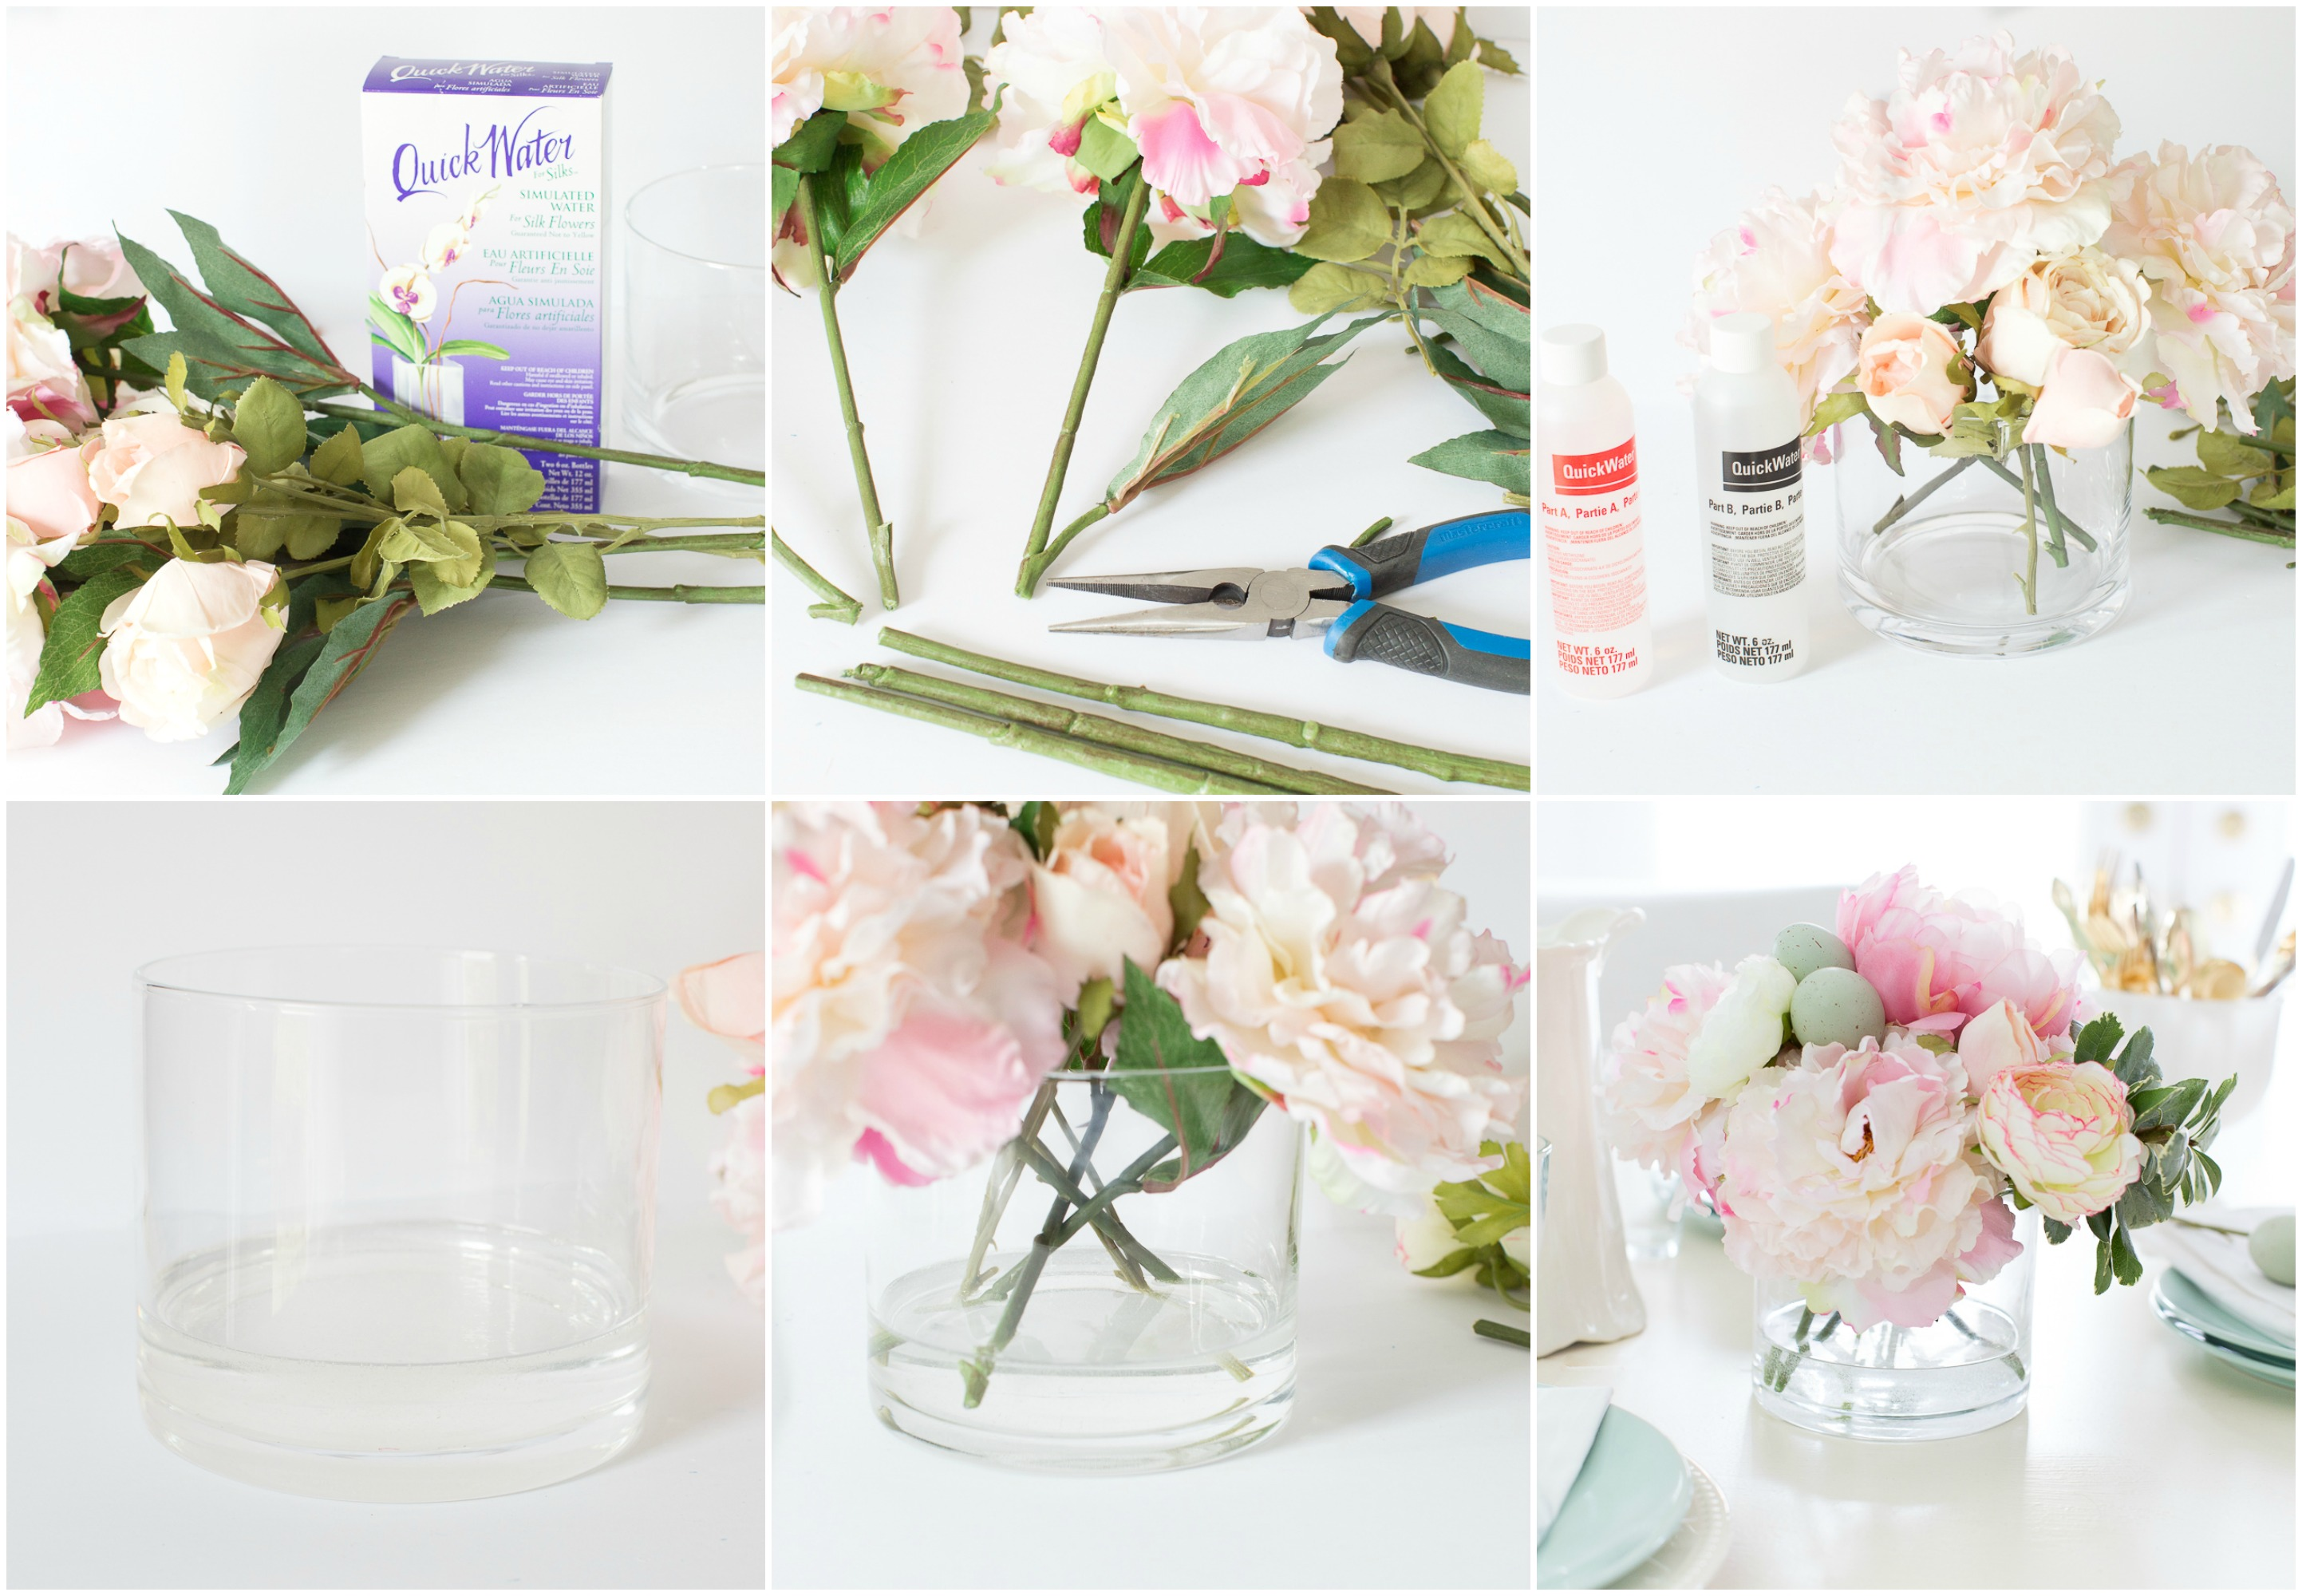 Diy faux water for artificial flowers fauxwaterforarticifialflowersdiy izmirmasajfo Gallery